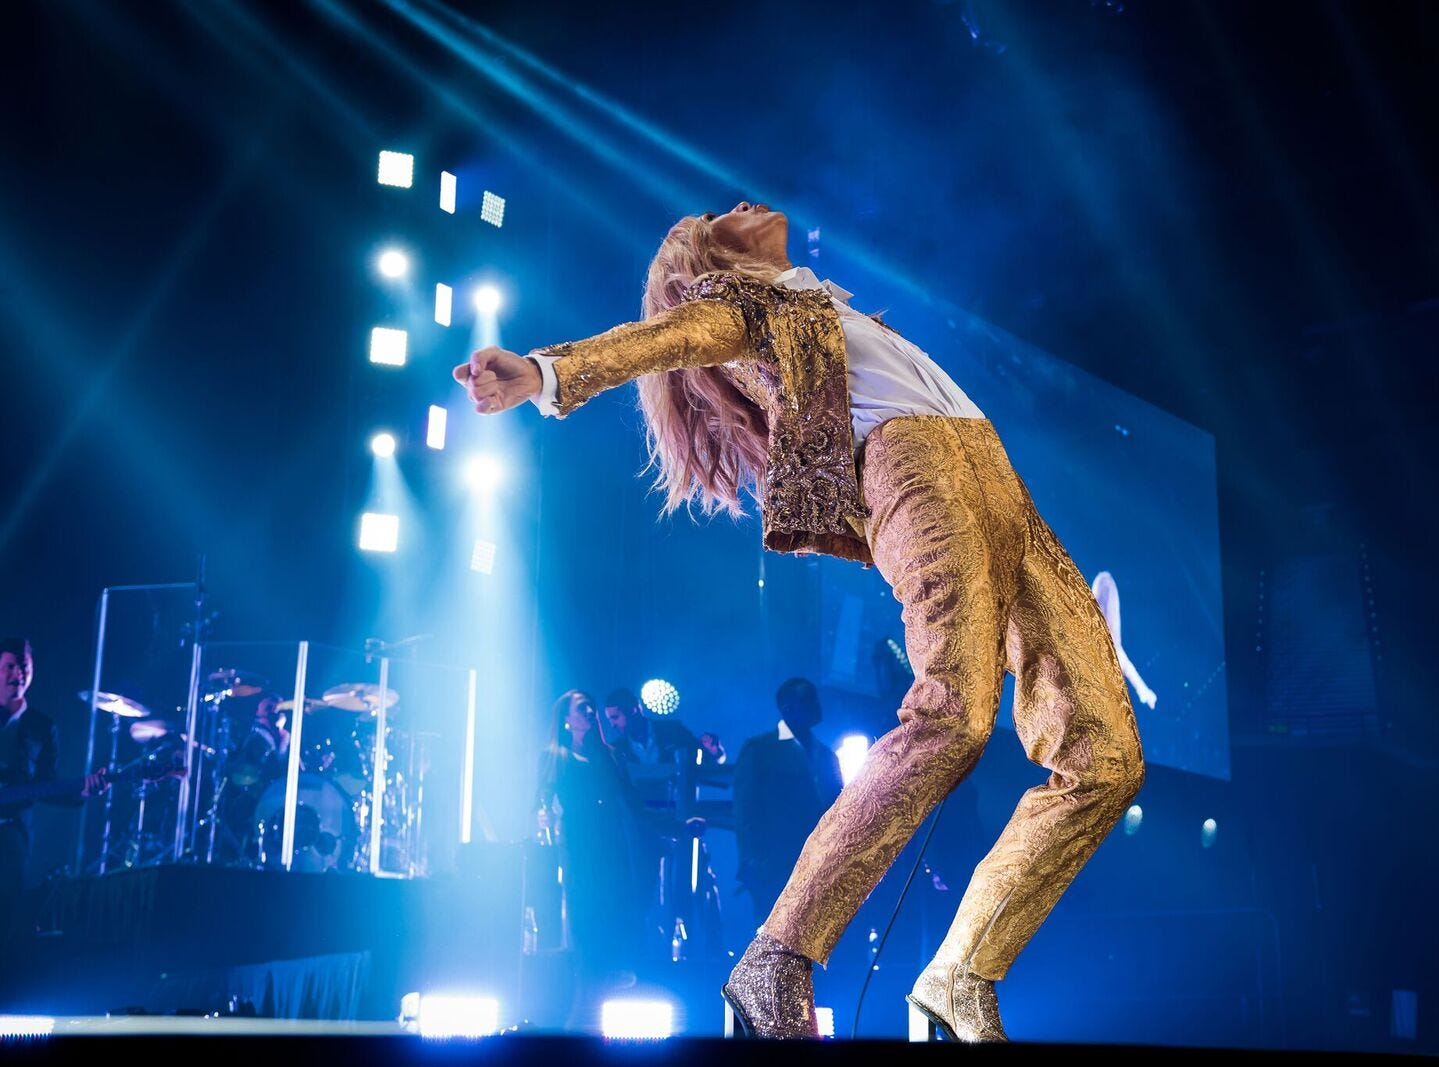 Celine Dion has had a long running show  at The Colosseum at Caesars Palace in Las Vegas.